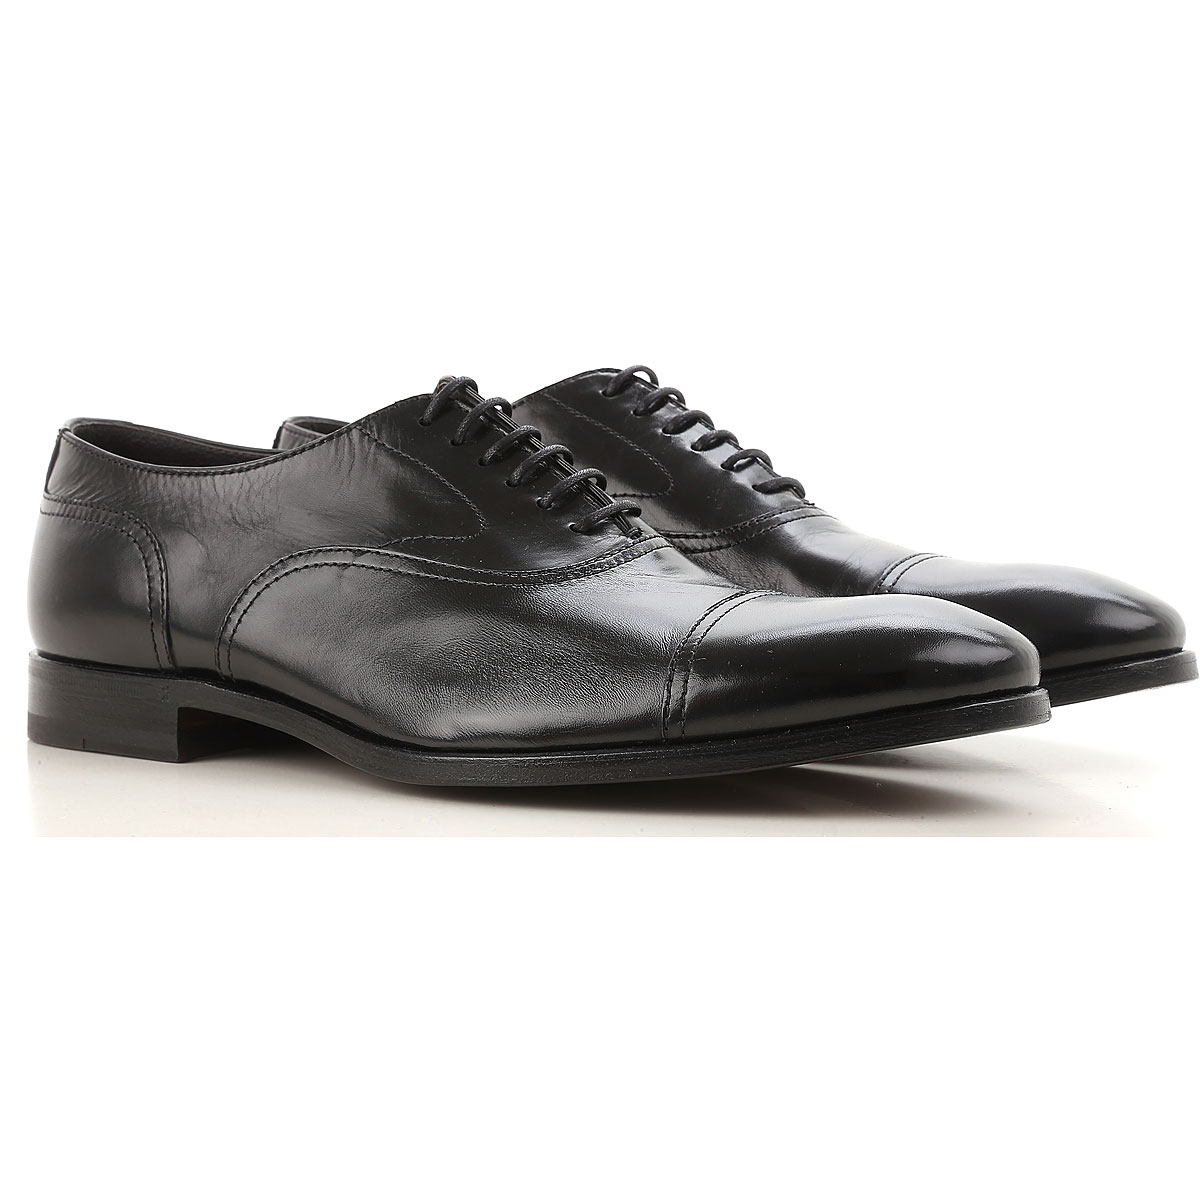 Henderson Lace Up Shoes for Men Oxfords, Derbies and Brogues On Sale, Black, Leather, 2019, 10 10.5 11 6 7 7.5 8 8.5 9 9.5